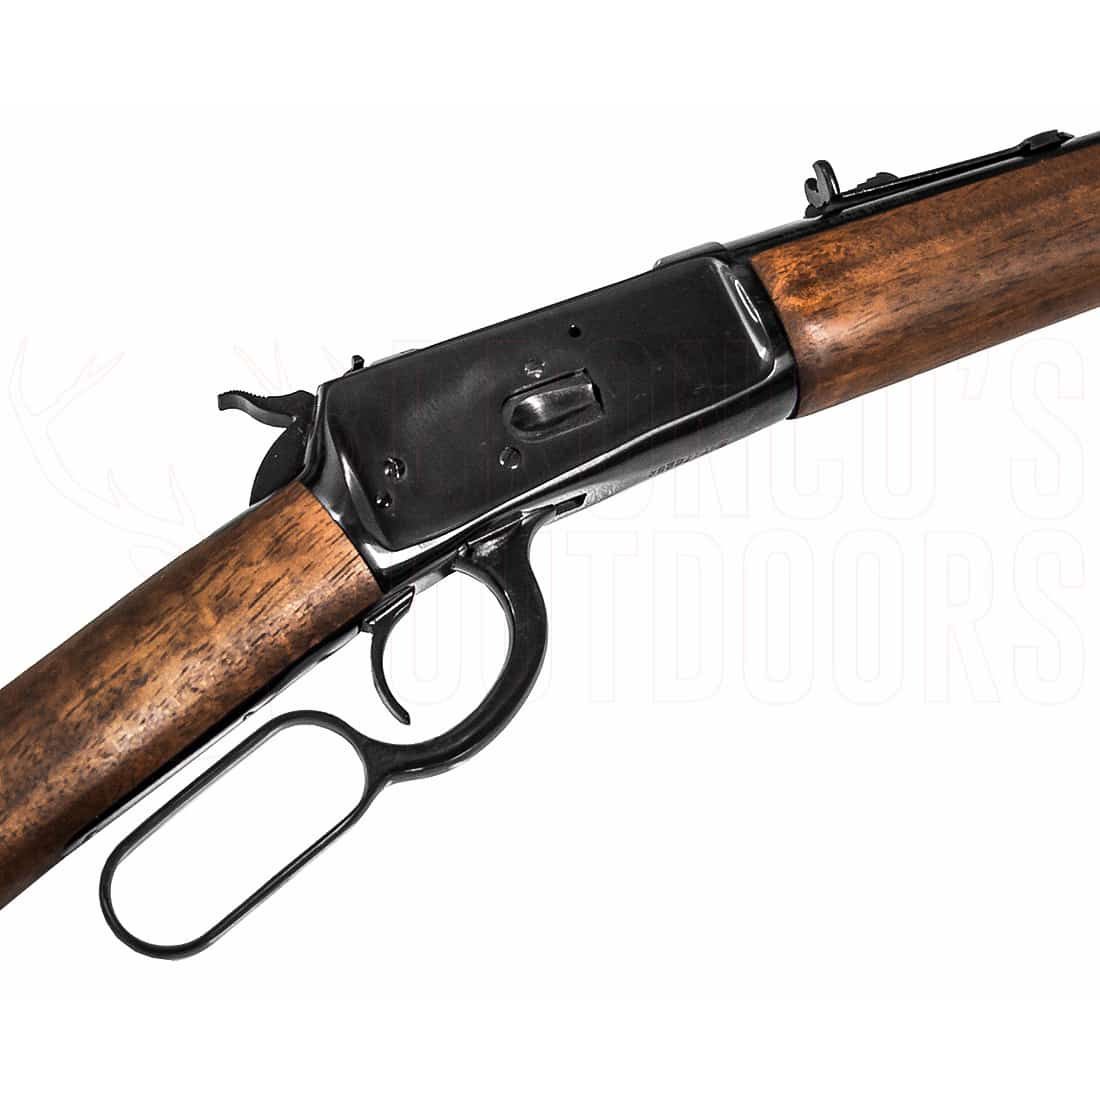 Rossi Puma Blued Lever Action Rifle